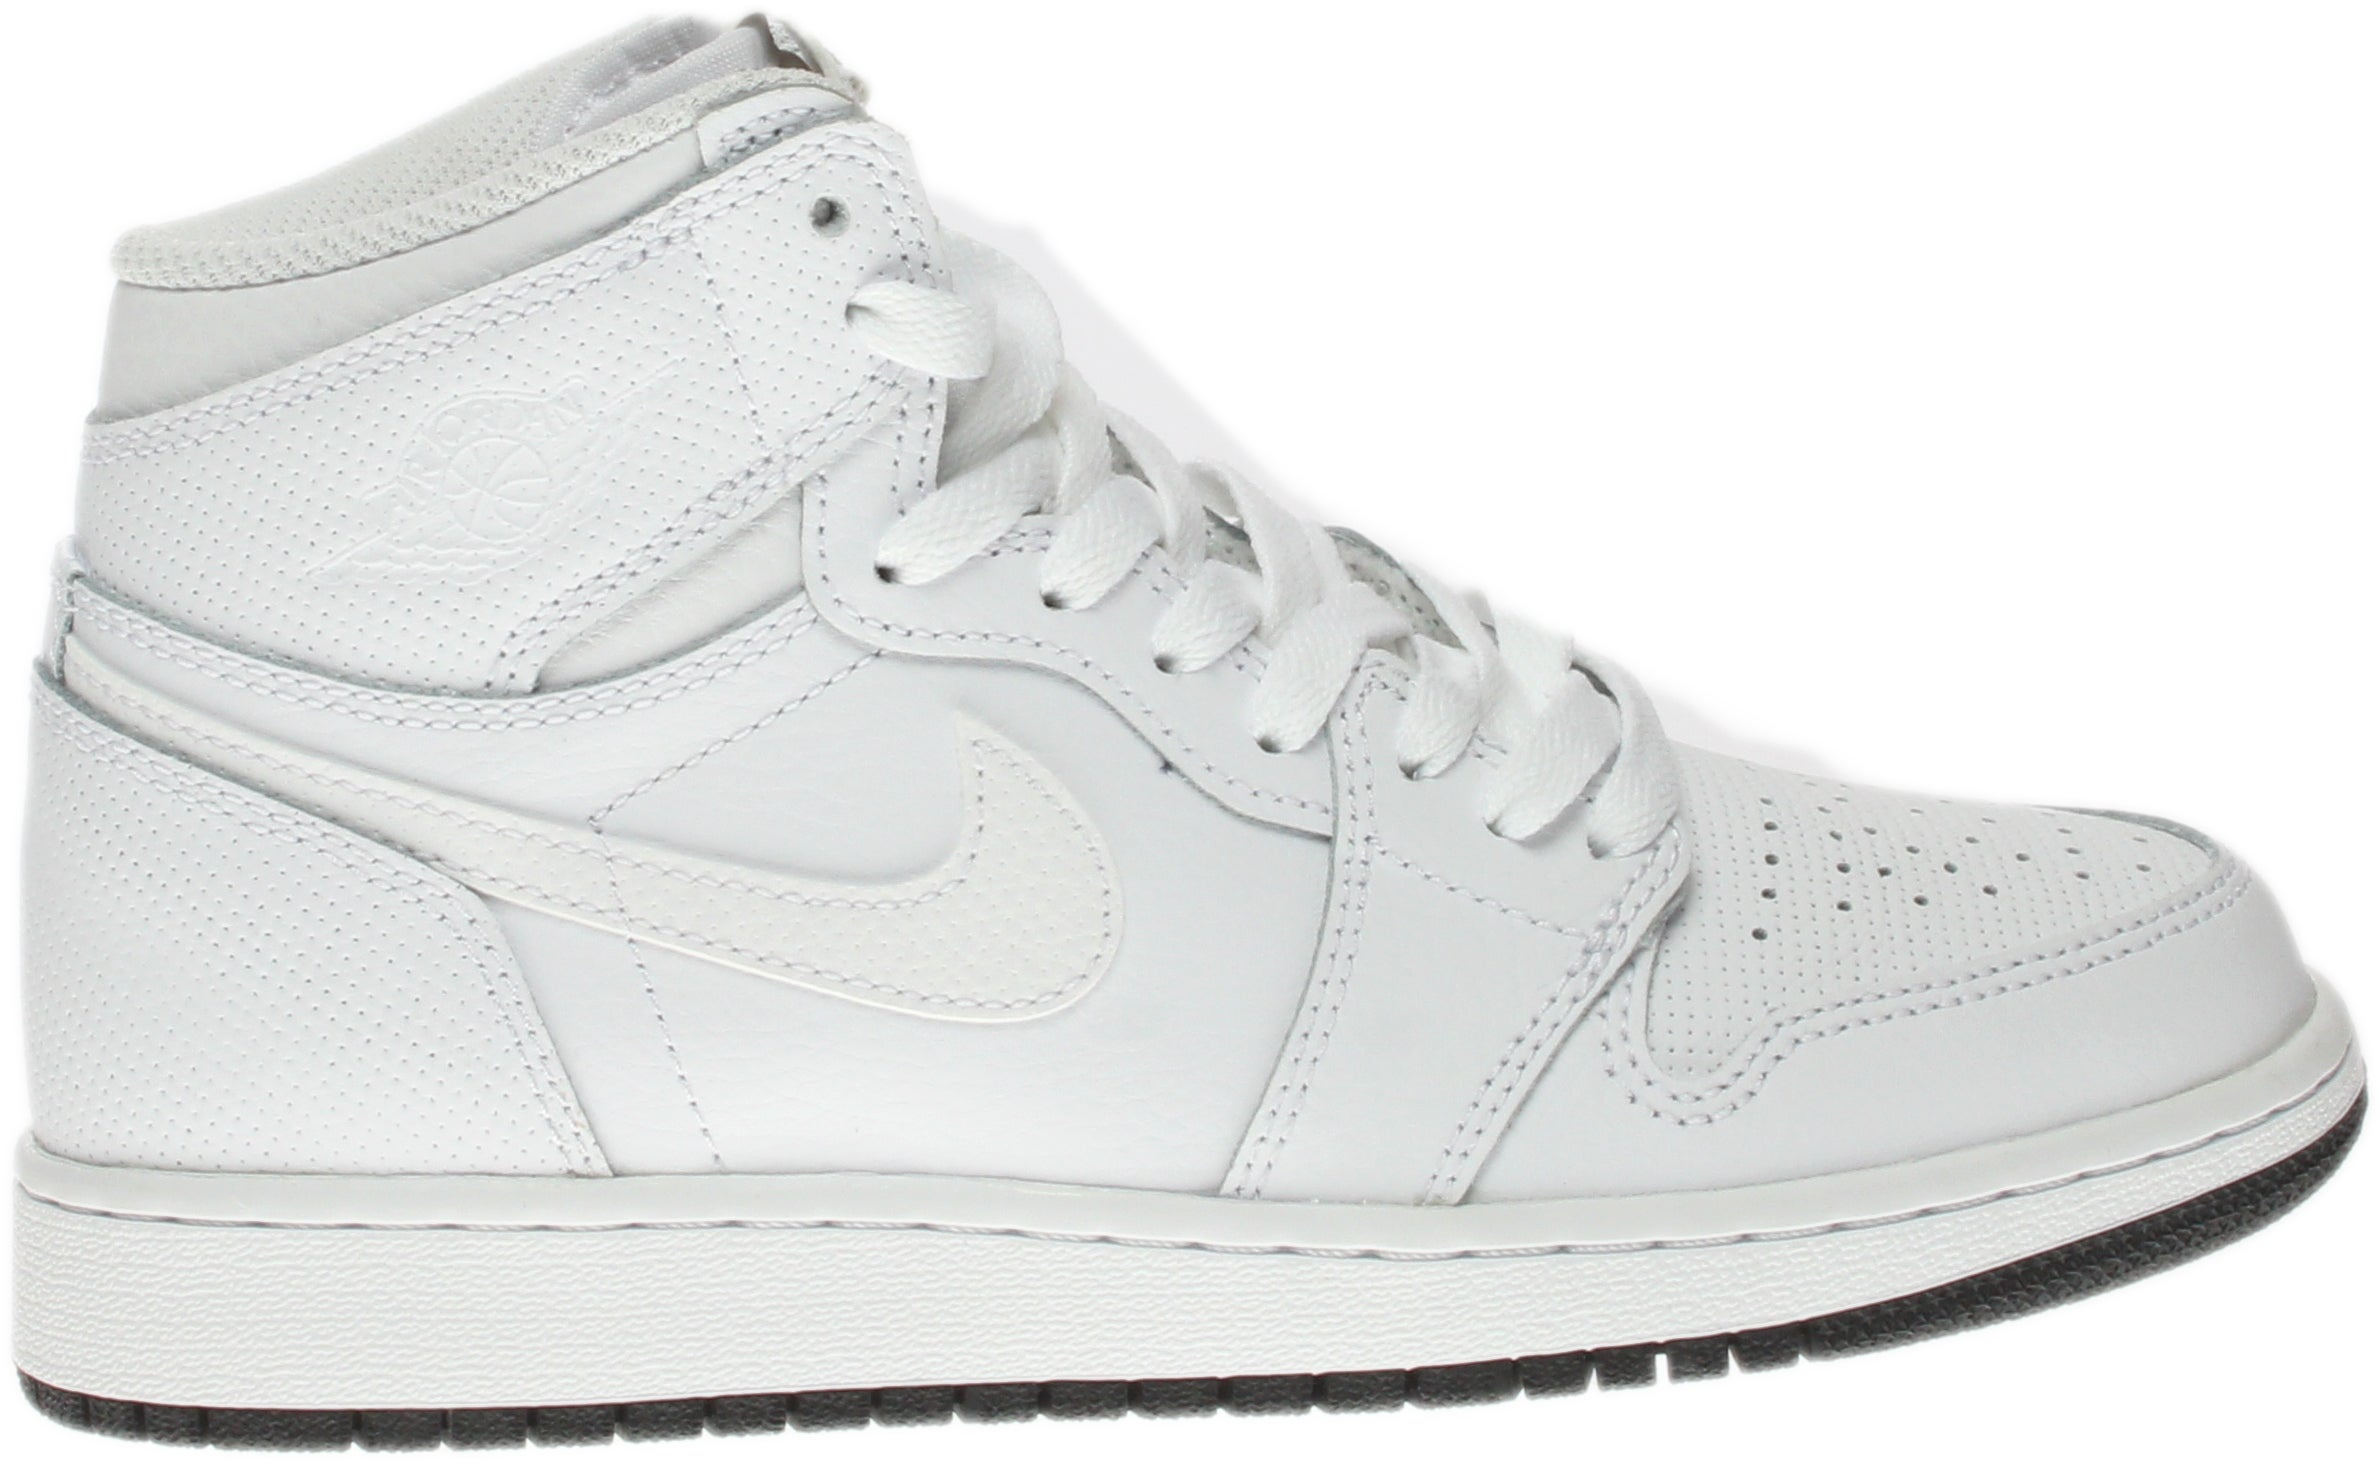 Jordan 1 Retro High OG BG